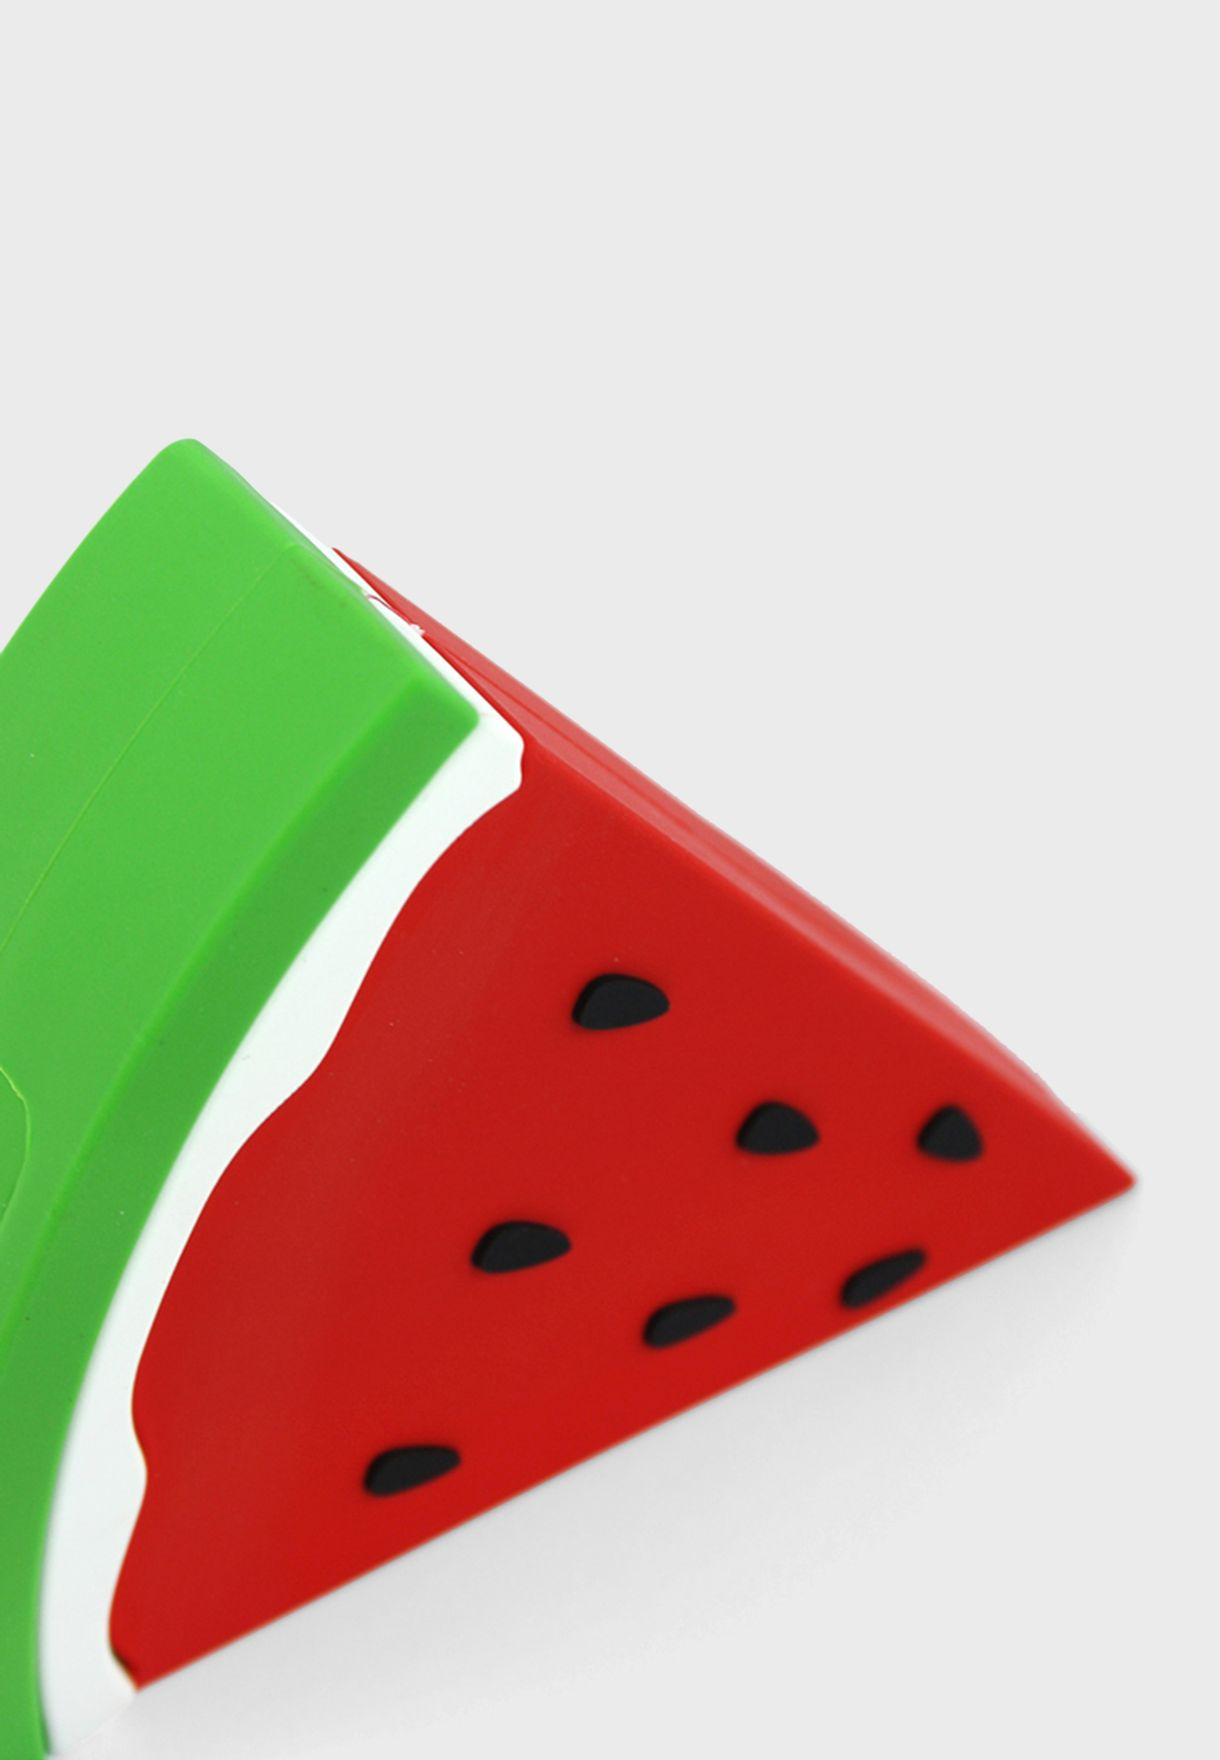 Watermelon Power Bank 2600Mh